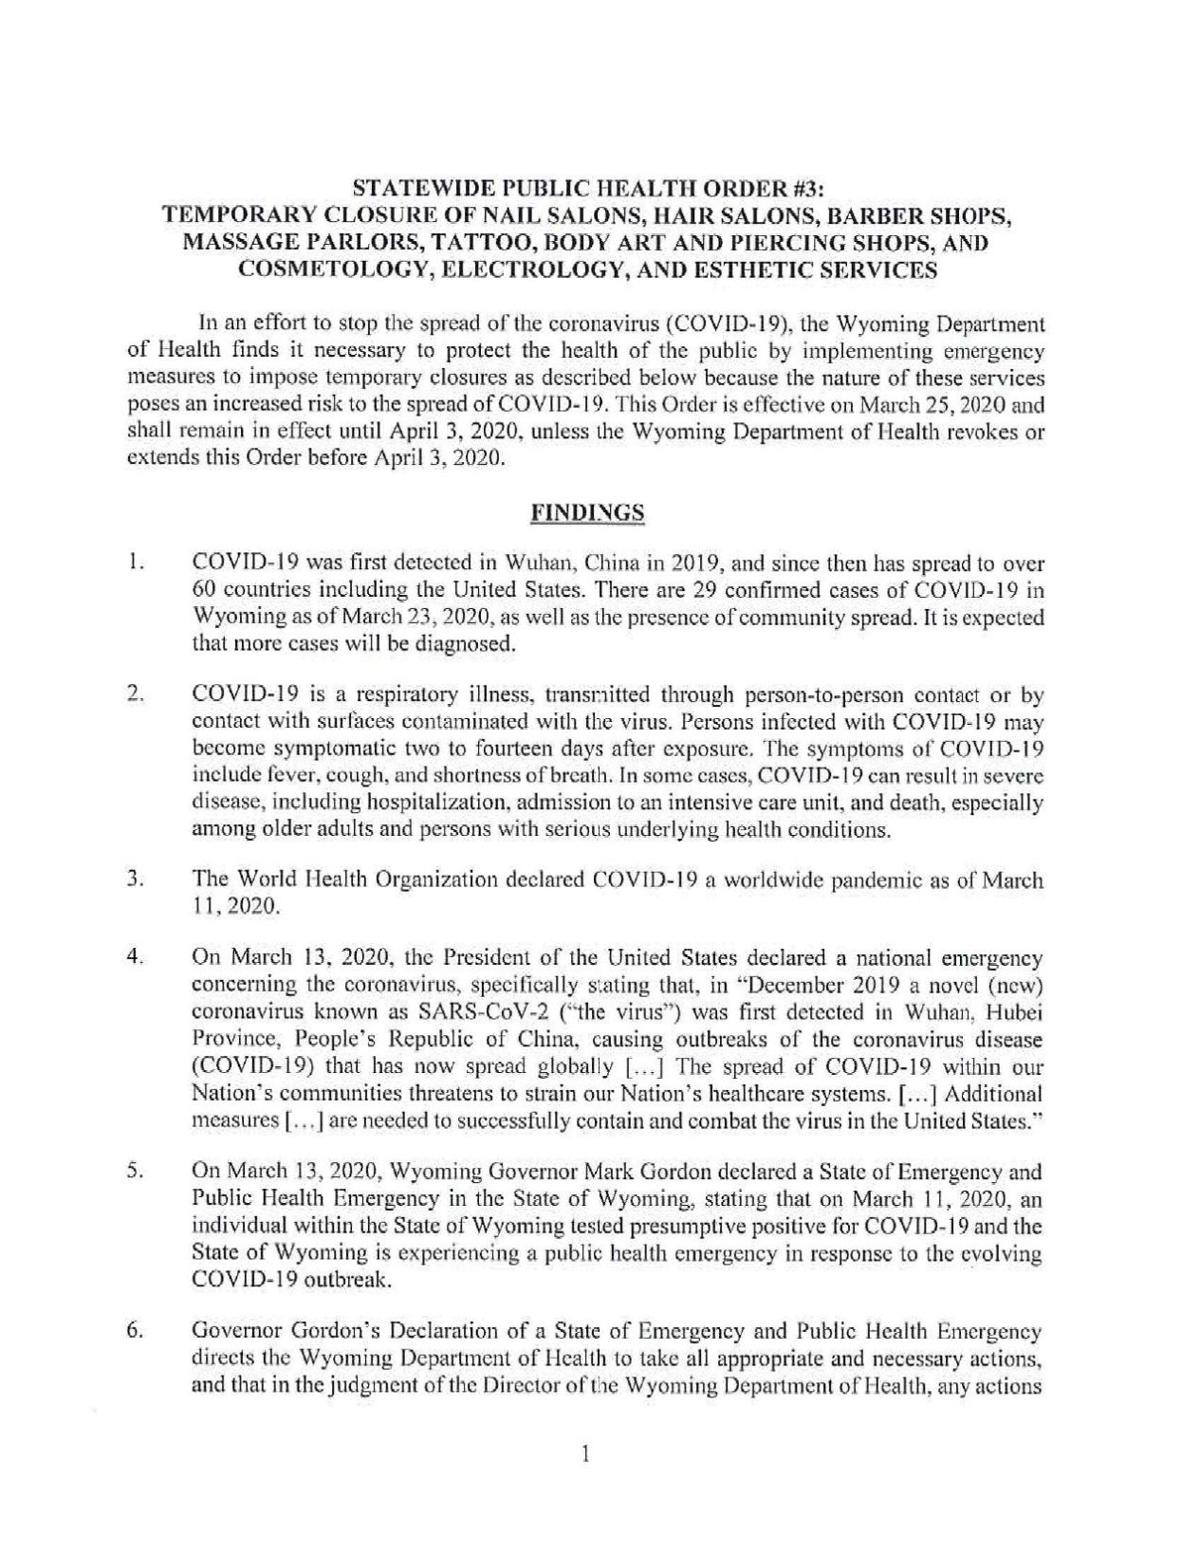 Wyoming Statewide Health Order #3